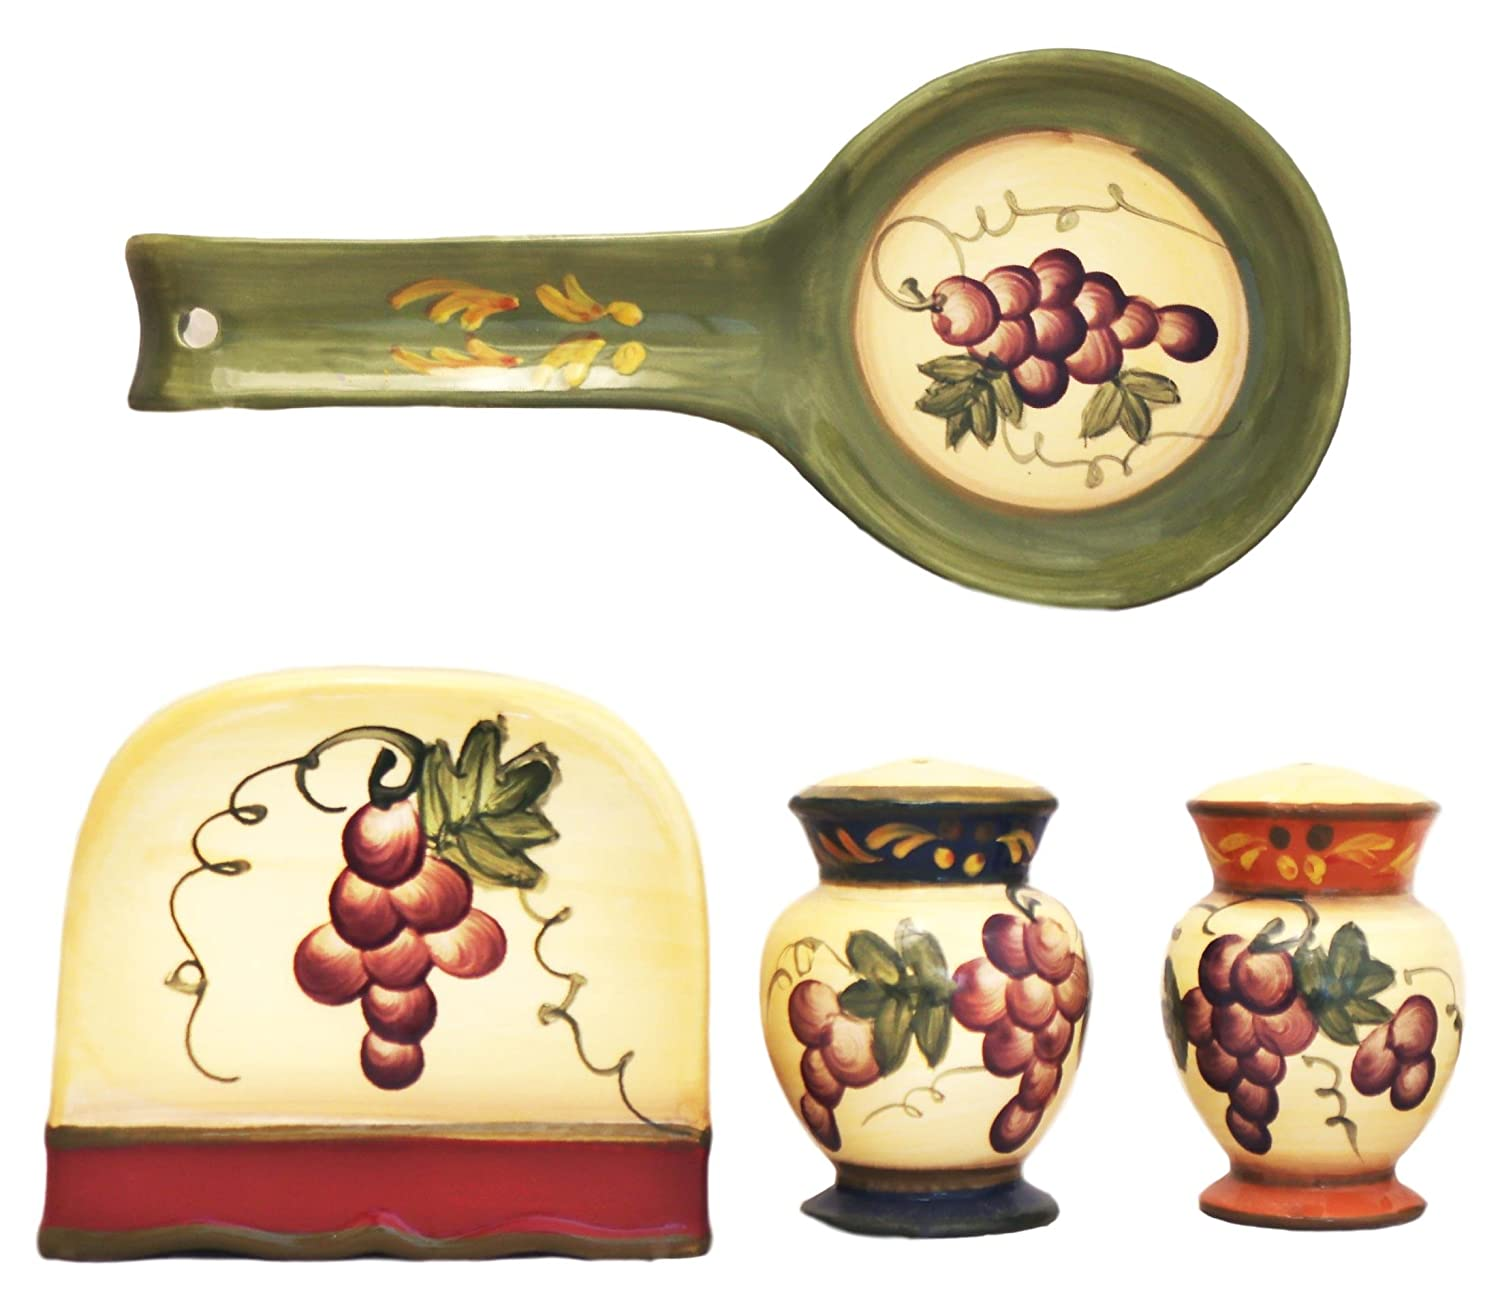 Tuscany Colorful Grapes Hand Painted Table Top set, 84025/28 by ACK